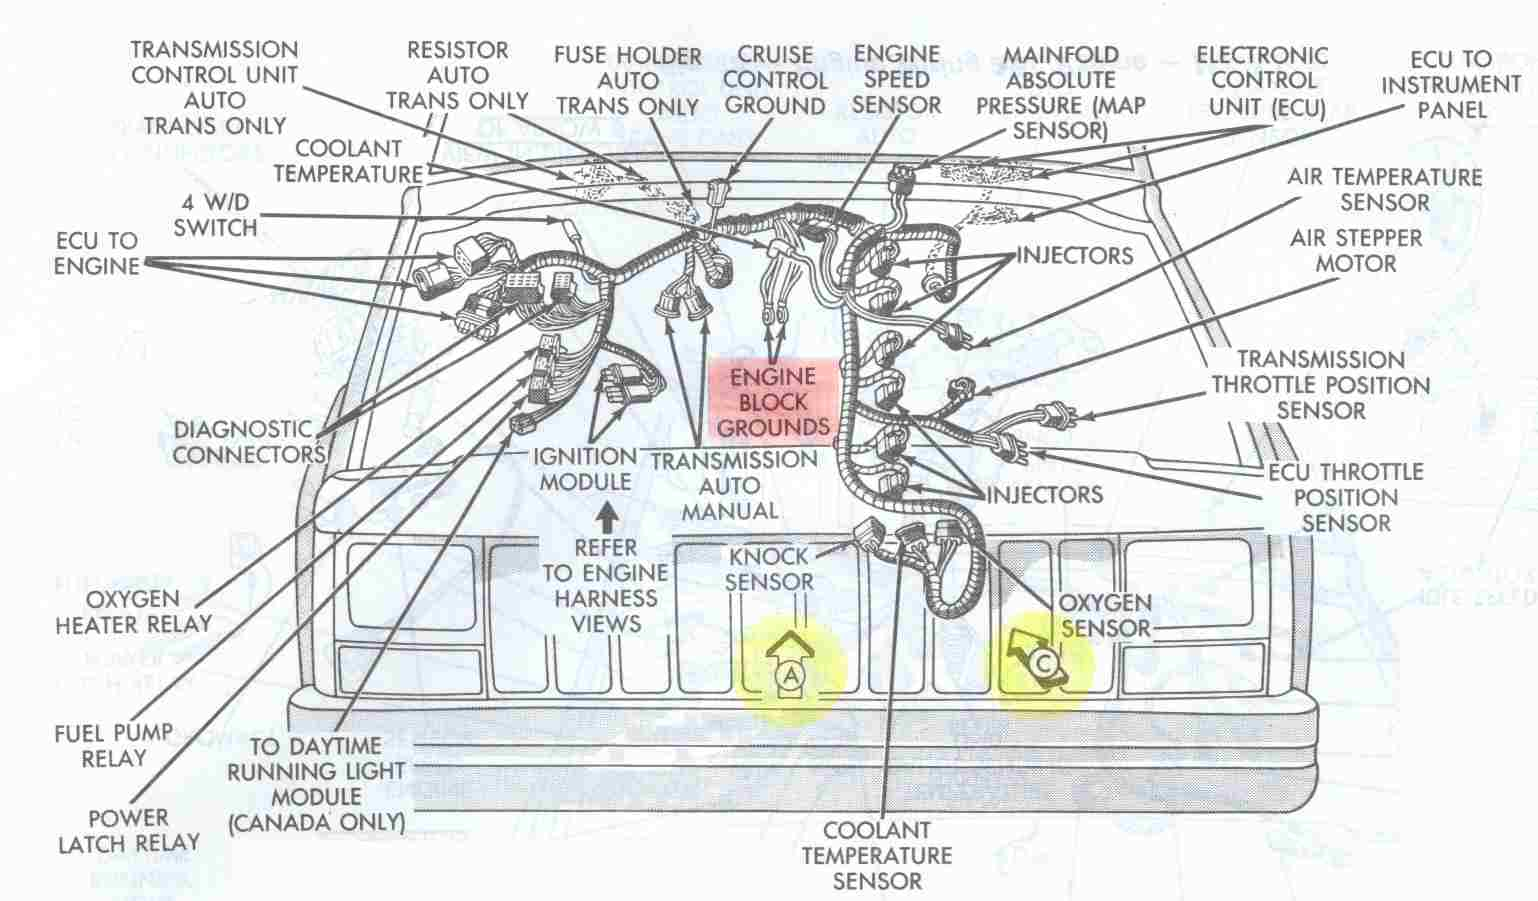 Electrical_Engine_Ground_Points_Overview jeep cherokee electrical diagnosing erratic behavior of engine 2000 jeep cherokee wiring diagram at virtualis.co